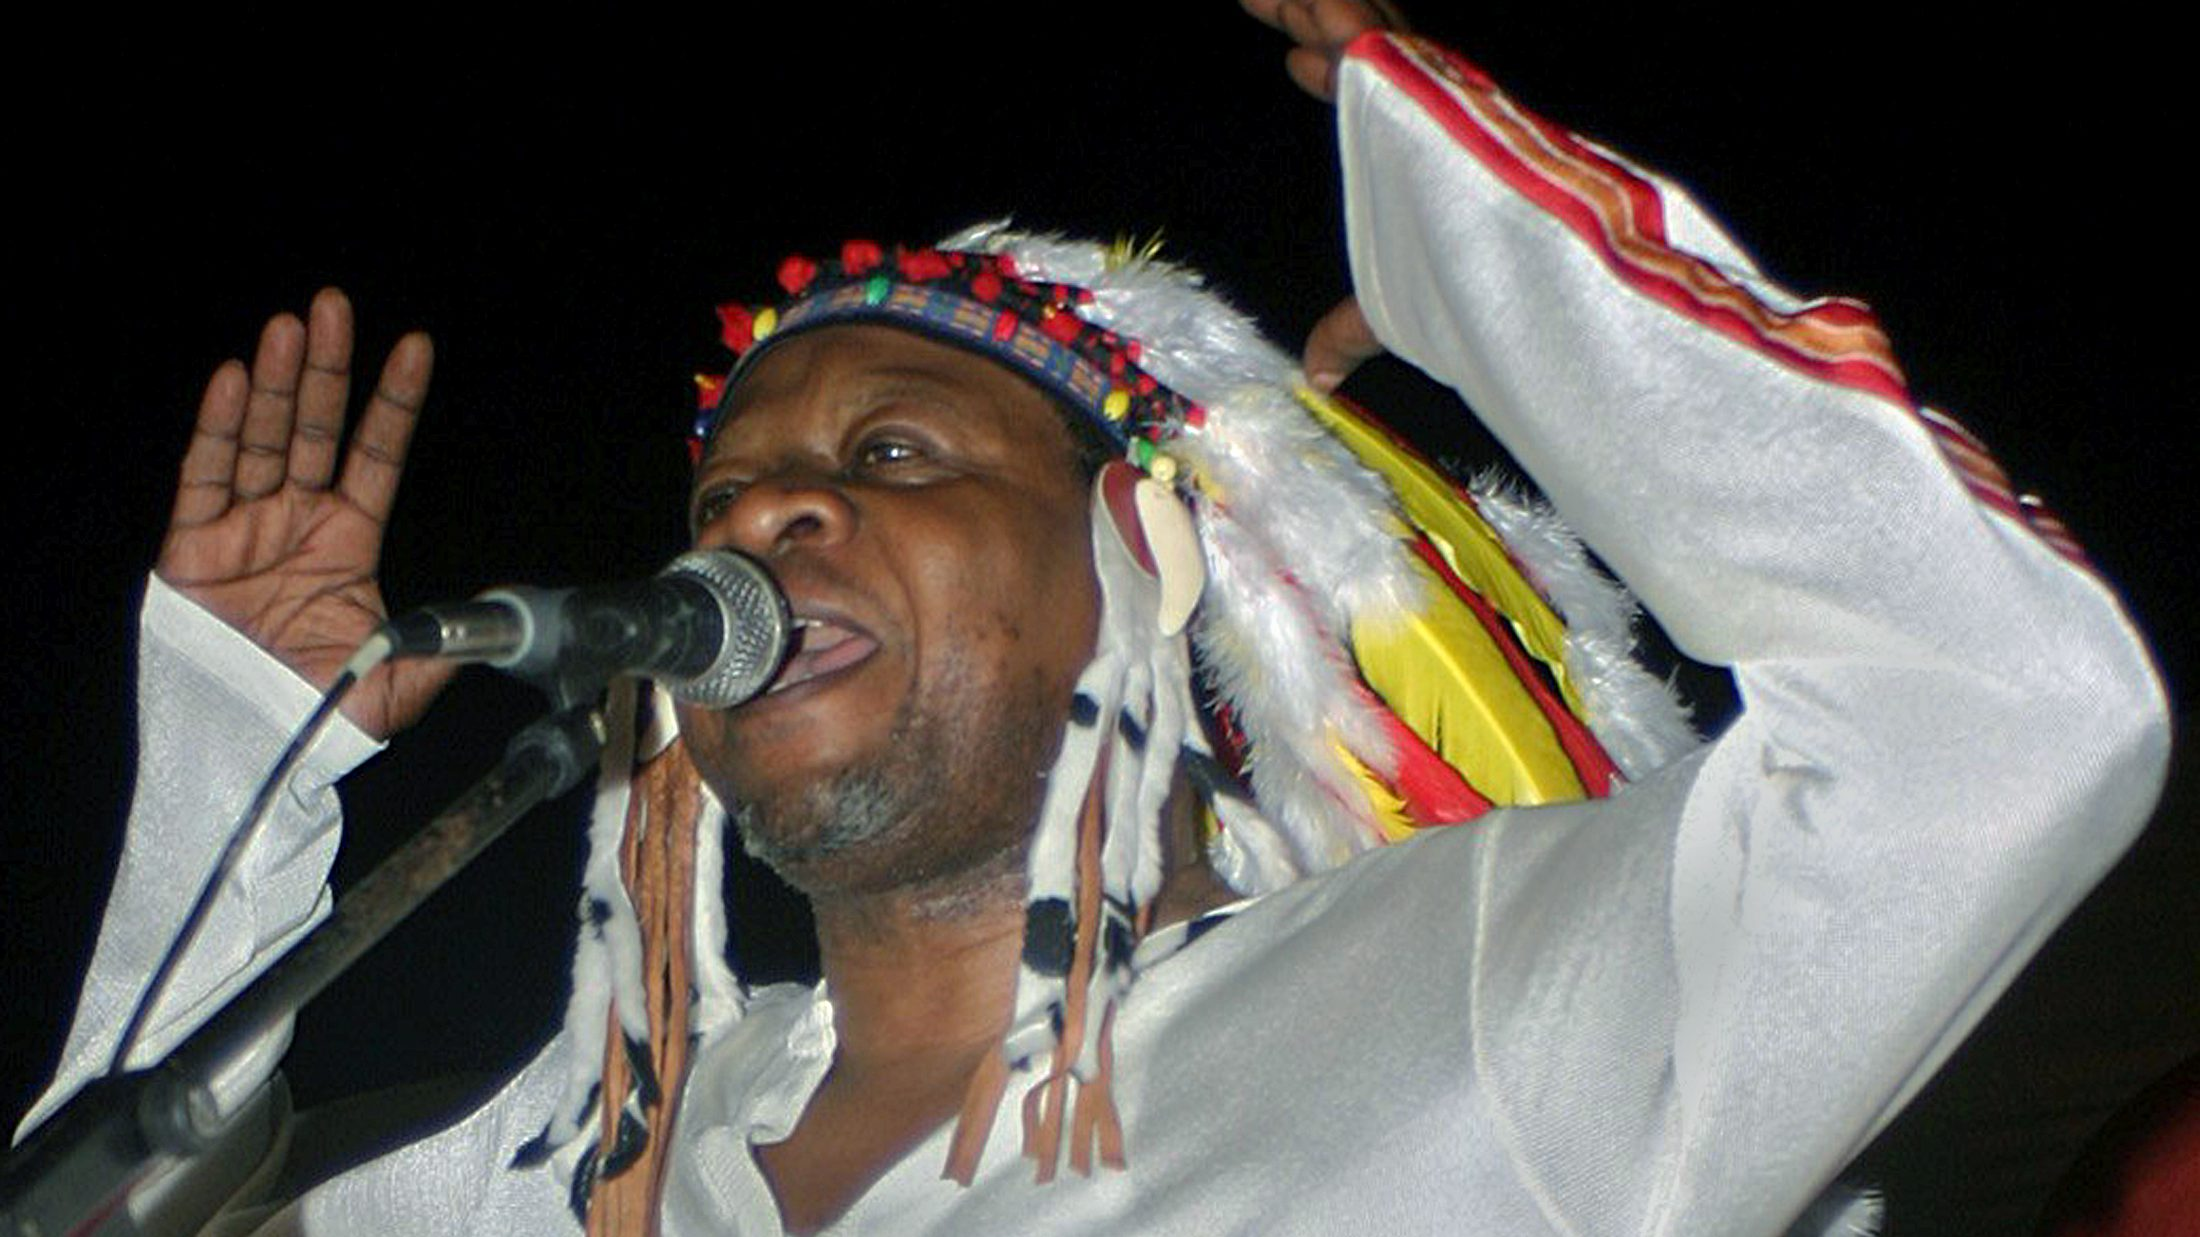 Congo's most famous musician Papa Wemba, gives his first concert in Kinshasa June 26, 2004 since his return home after facing charges of having illegally helped fellow Congolese obtain visas for entry to Europe by saying they were part of his entourage. After years of living abroad, Wemba, 54, said that he would return home for good, once he had been cleared of the charges. Picture taken June 26, 2004. TO GO WITH BC-PAPA WEMBA. REUTERS/ David Lewis  AN/SM - RTR77PB